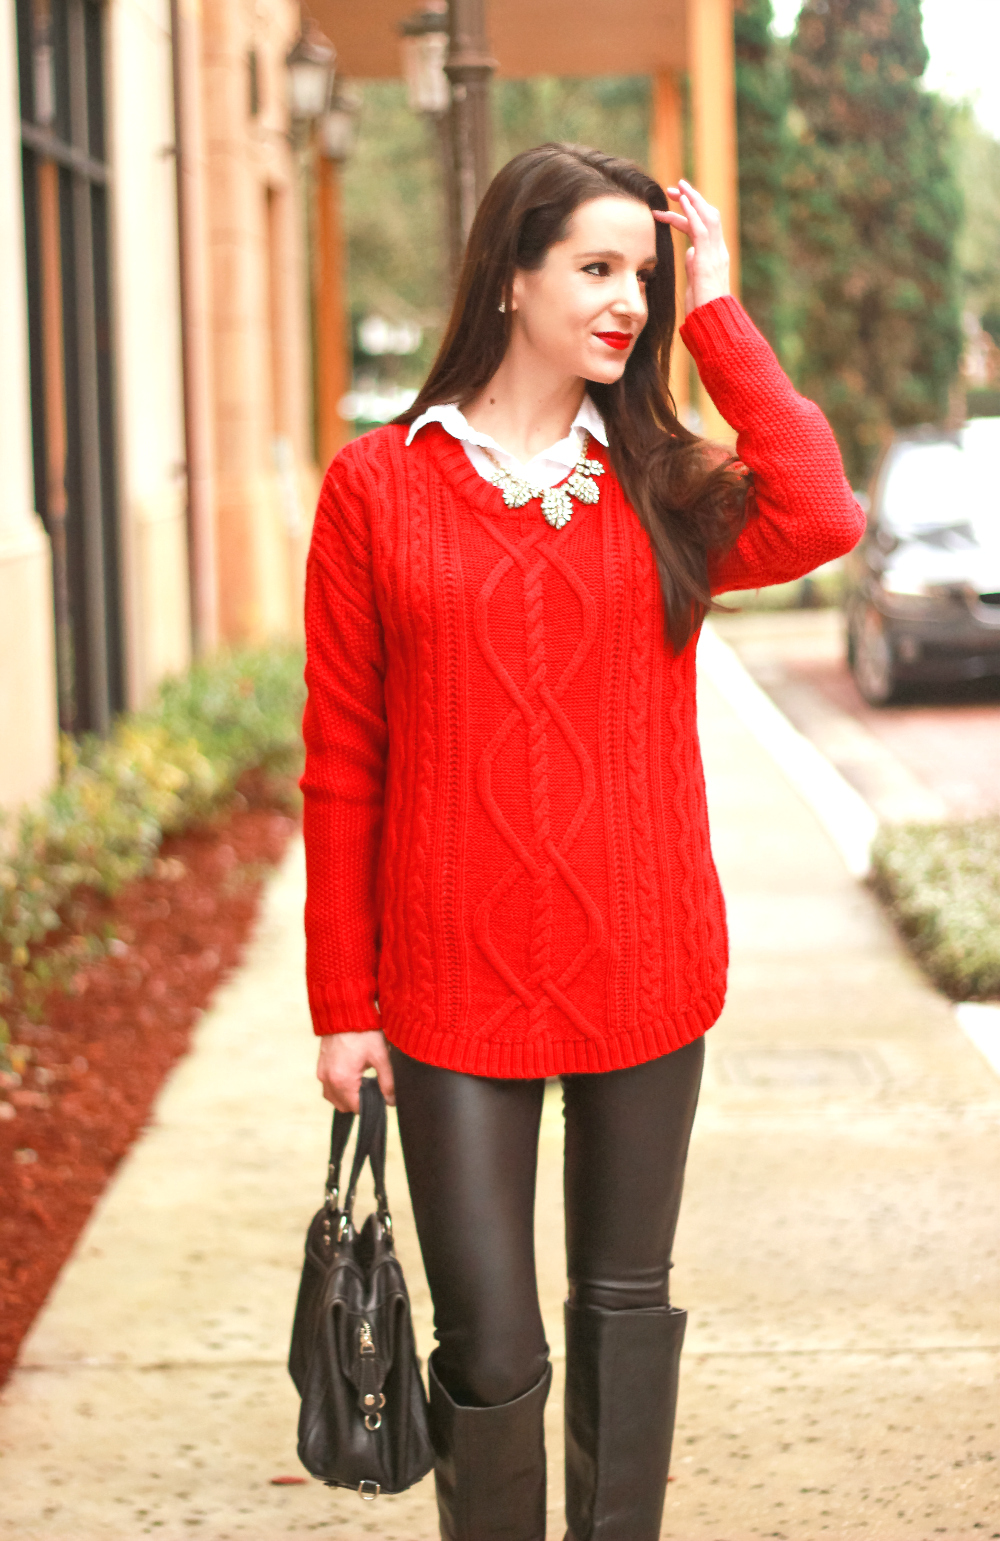 Oversized Red Cable Knit Sweater, Red Cable Knit Sweater, Holiday Outfit, Casual Sweater Outfit, Stephanie Ziajka, Diary of a Debutante